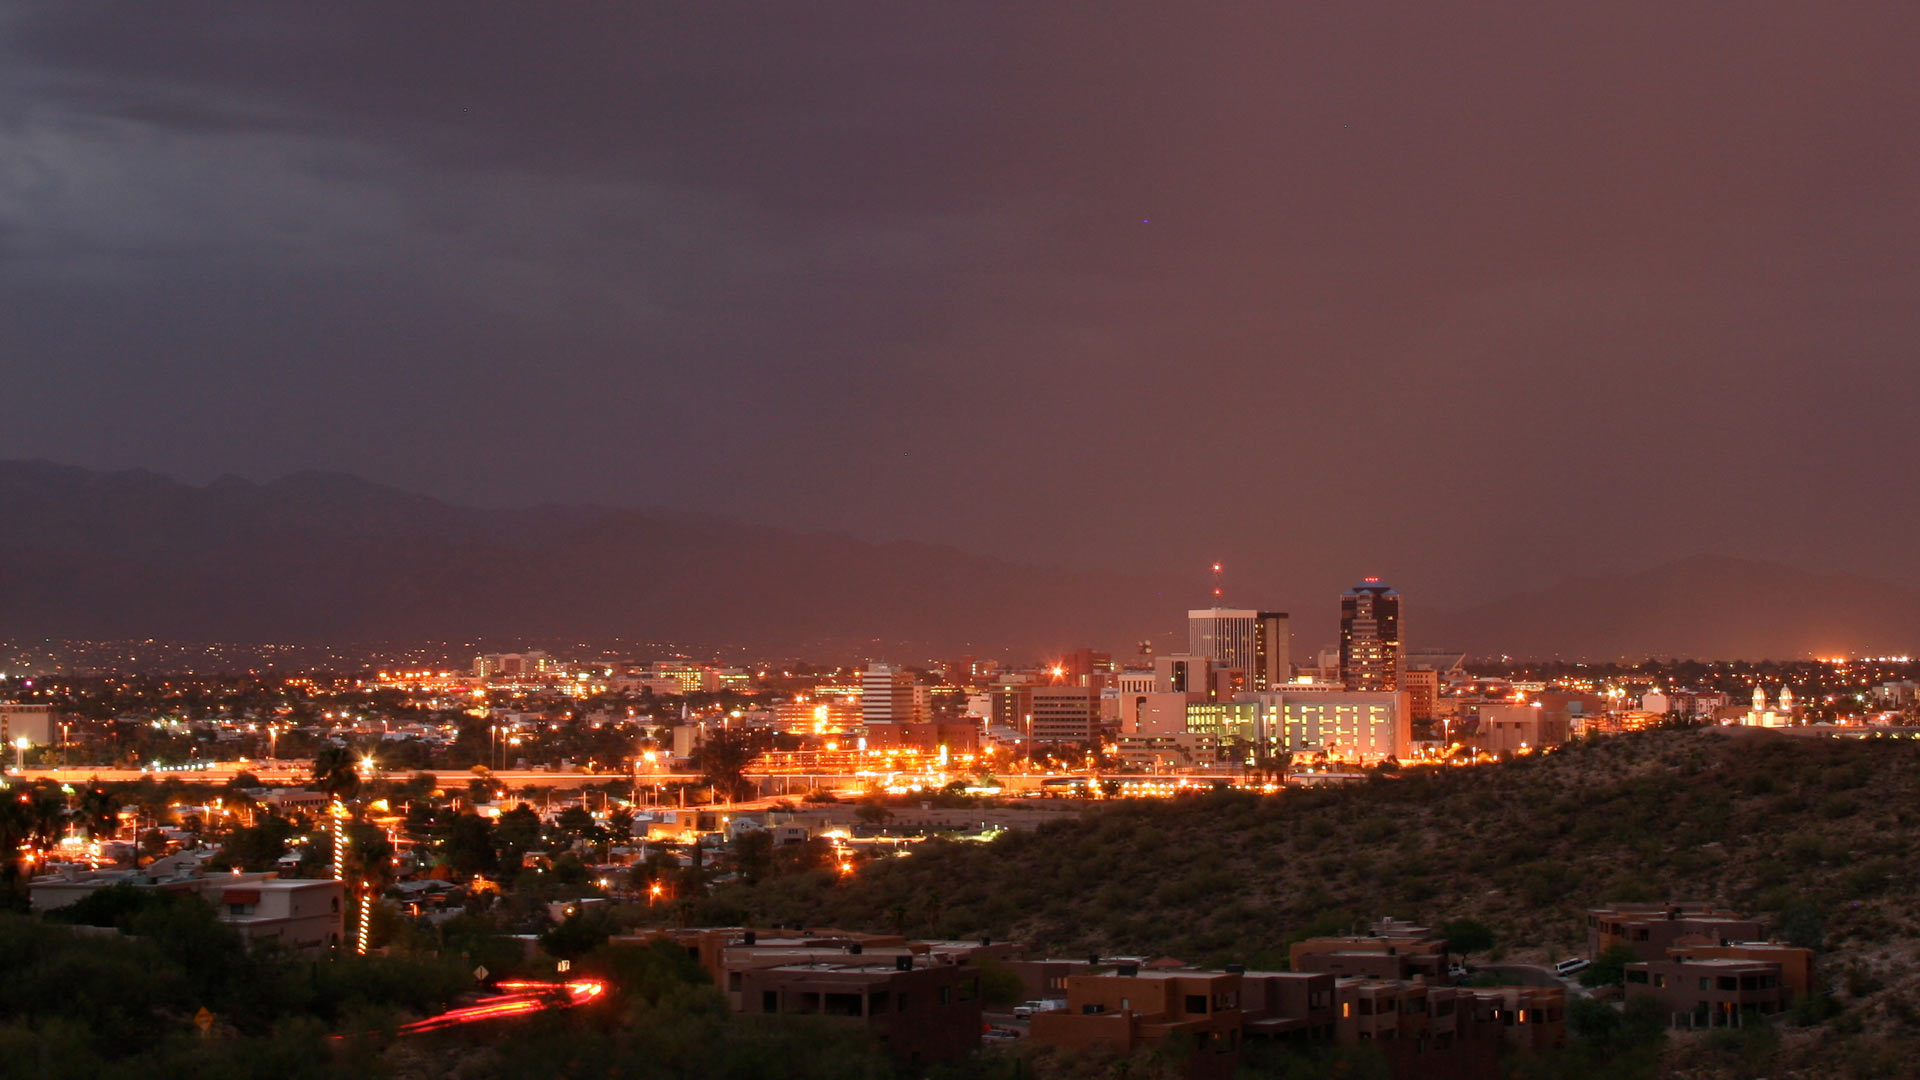 Overlooking the Tucson city skyline at night.